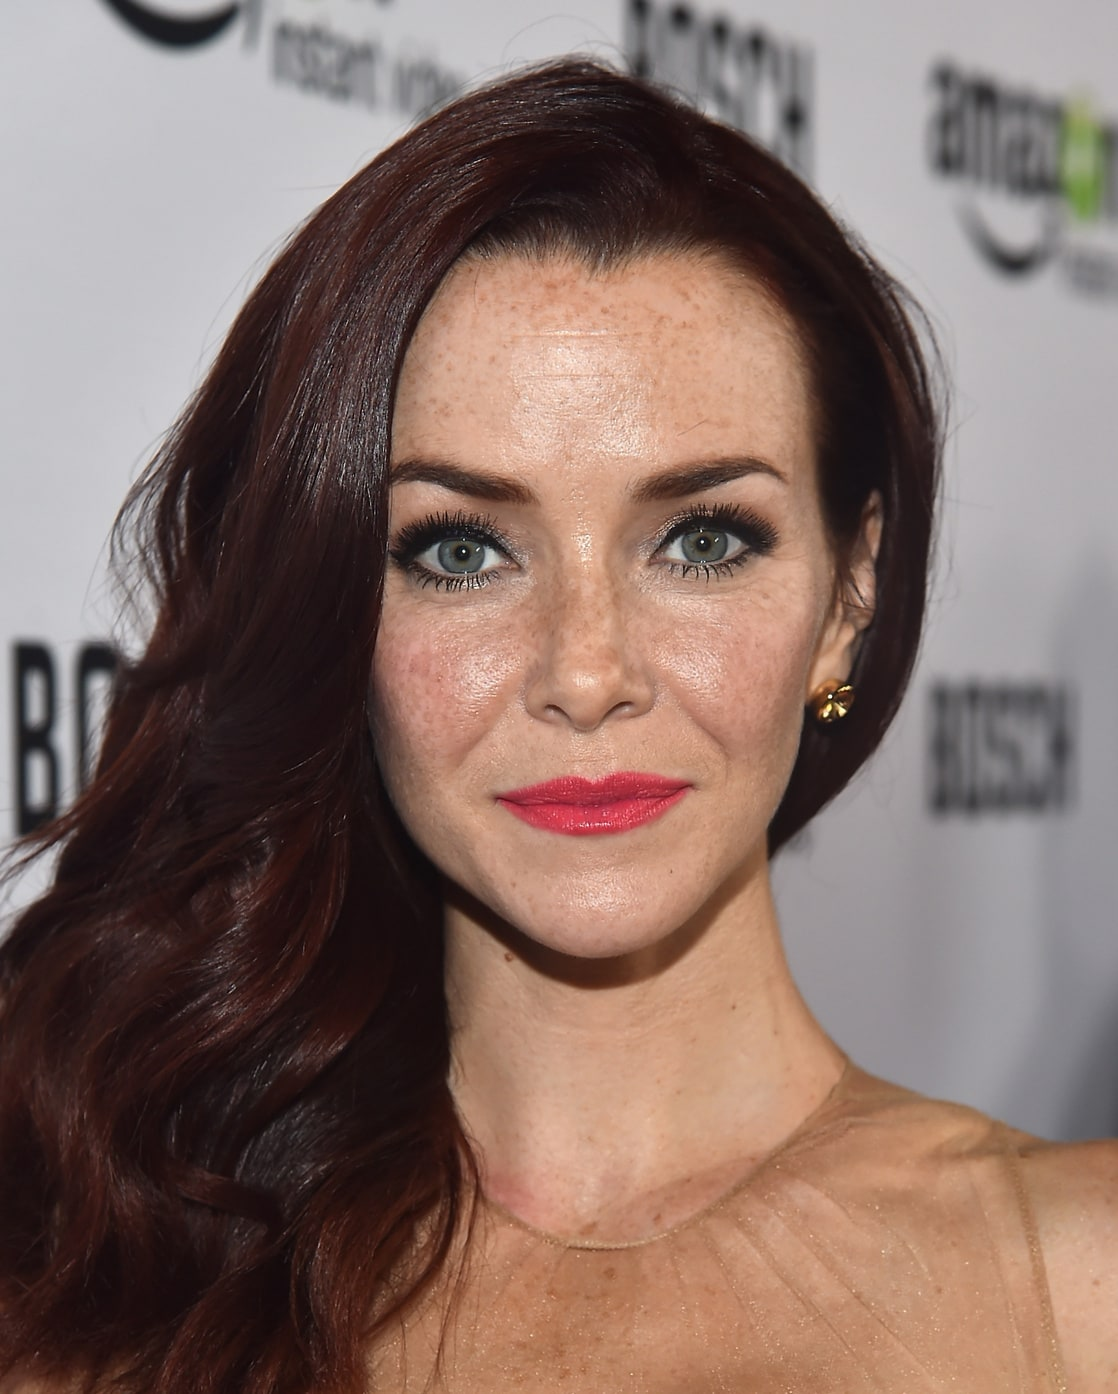 annie wersching - photo #45